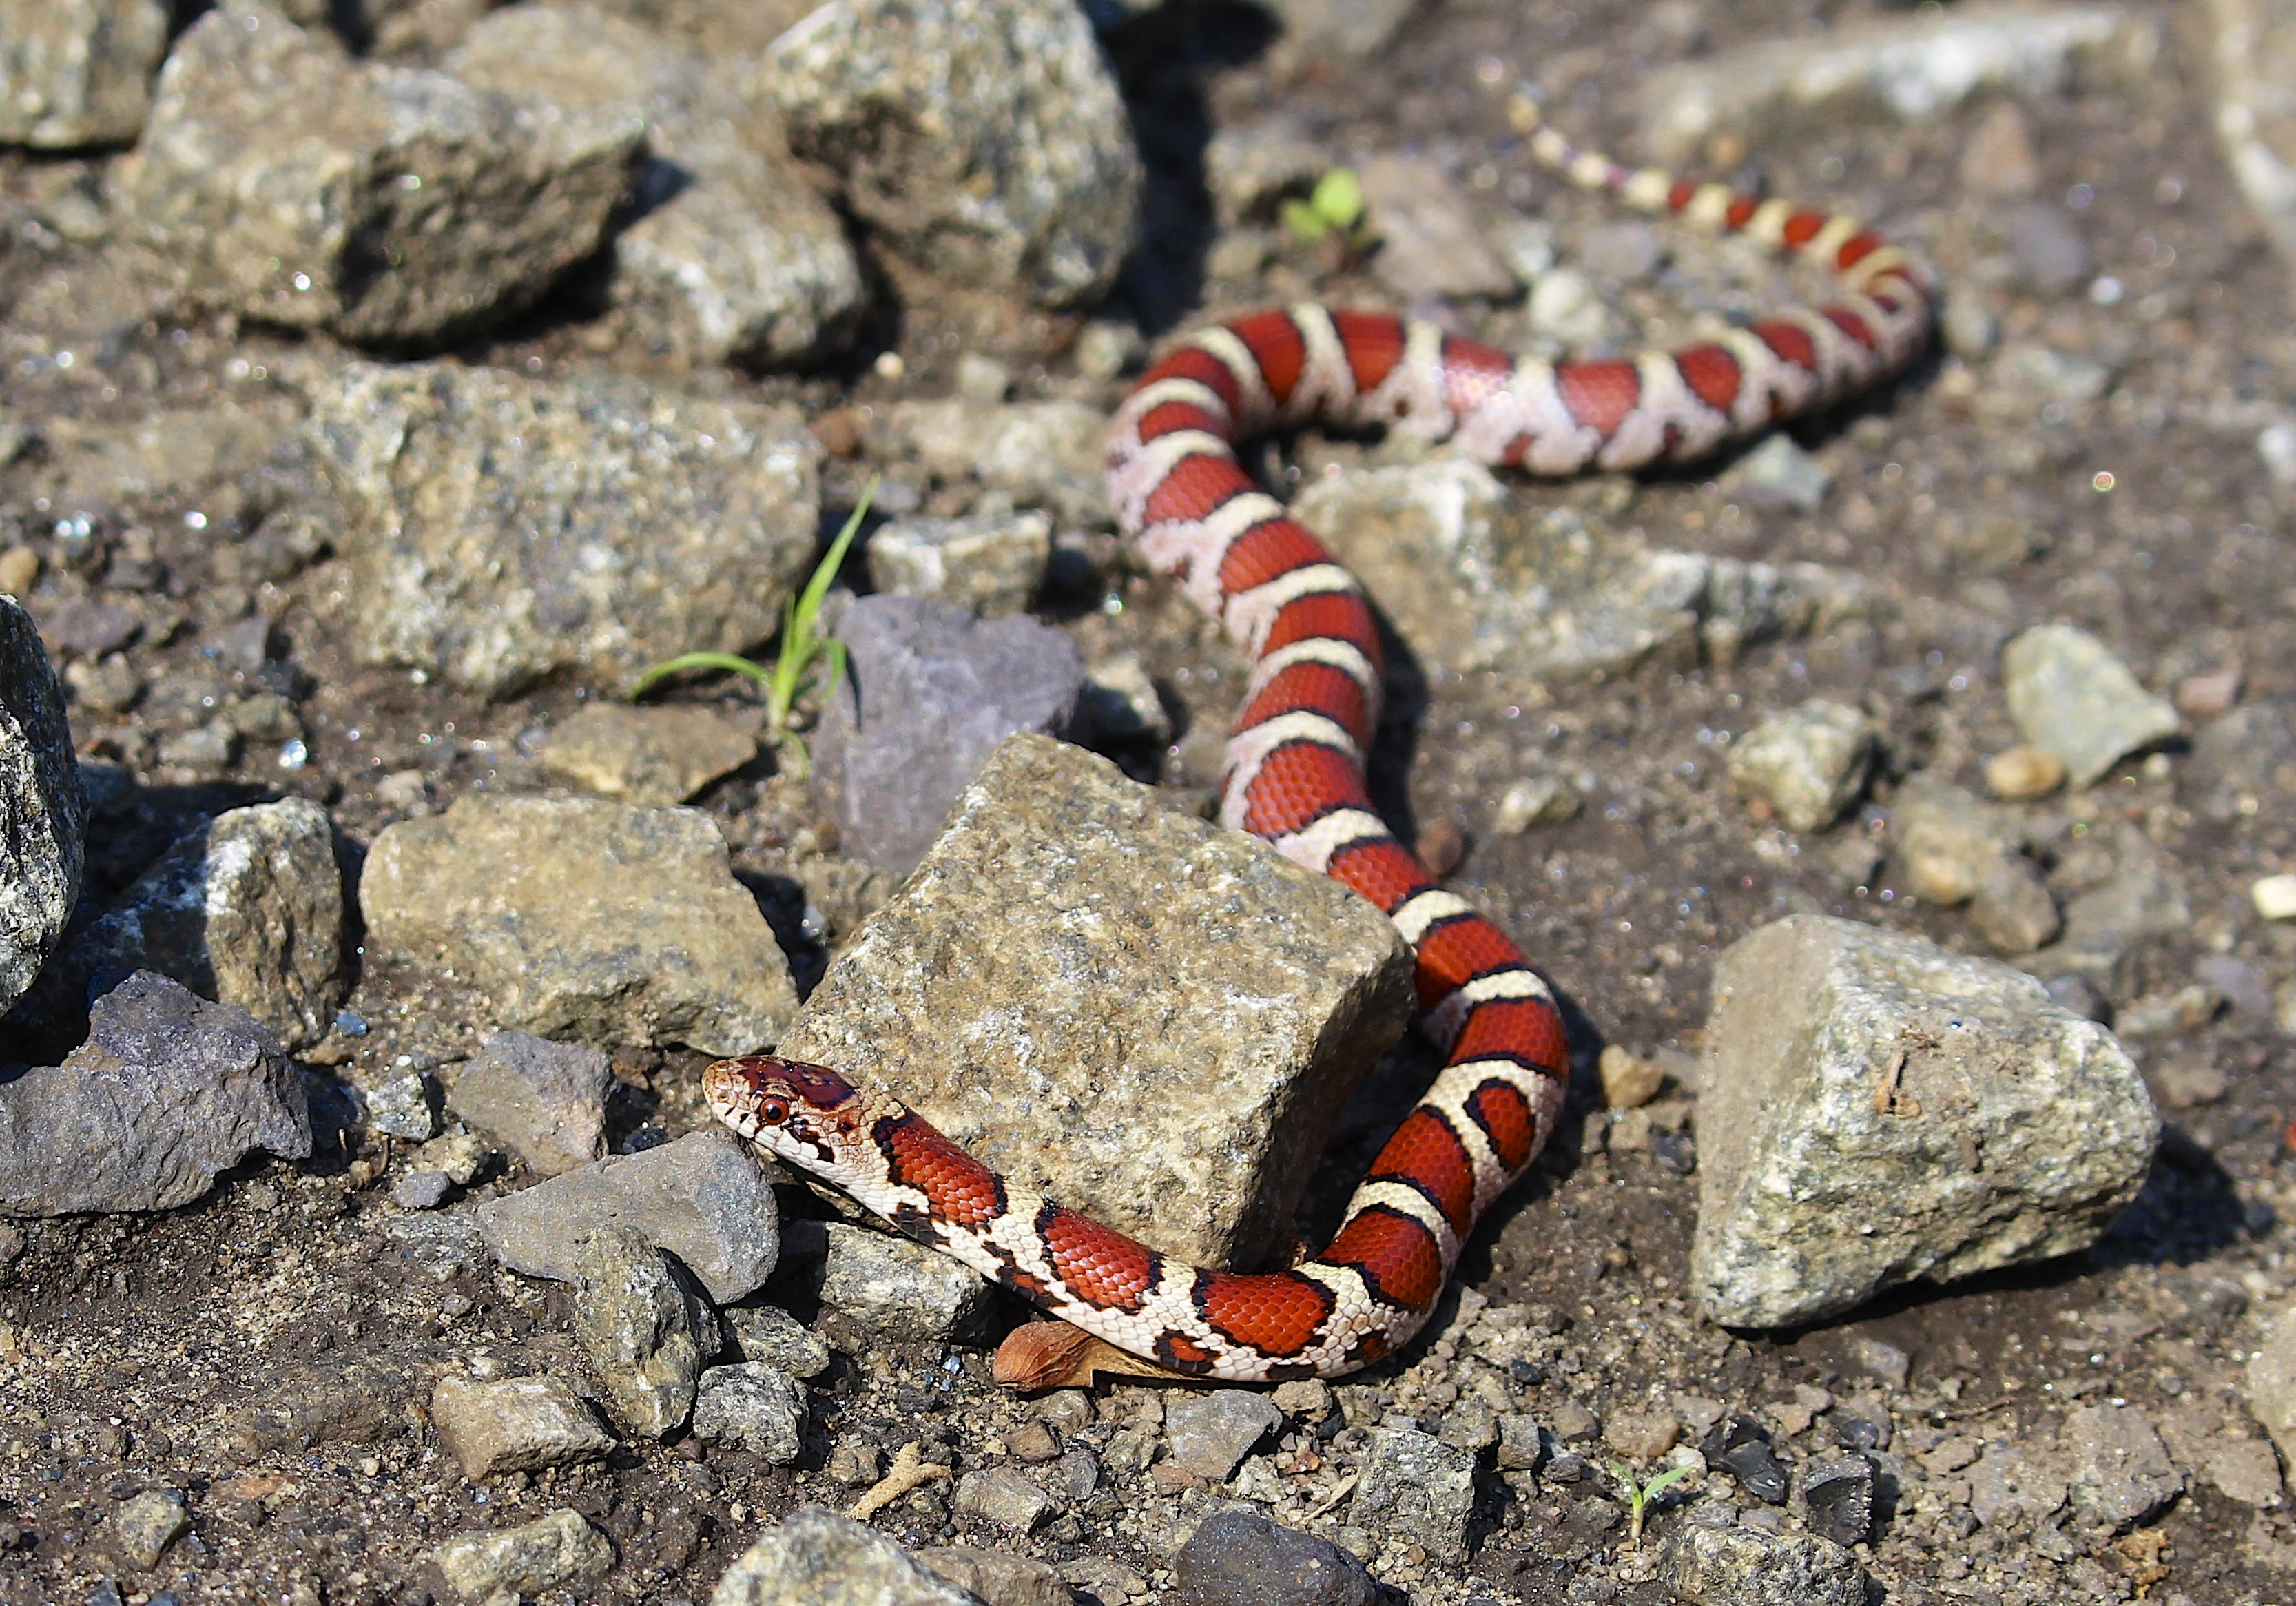 Eastern Milk Snake, Bucks County, PA, May 2016 | Bucks